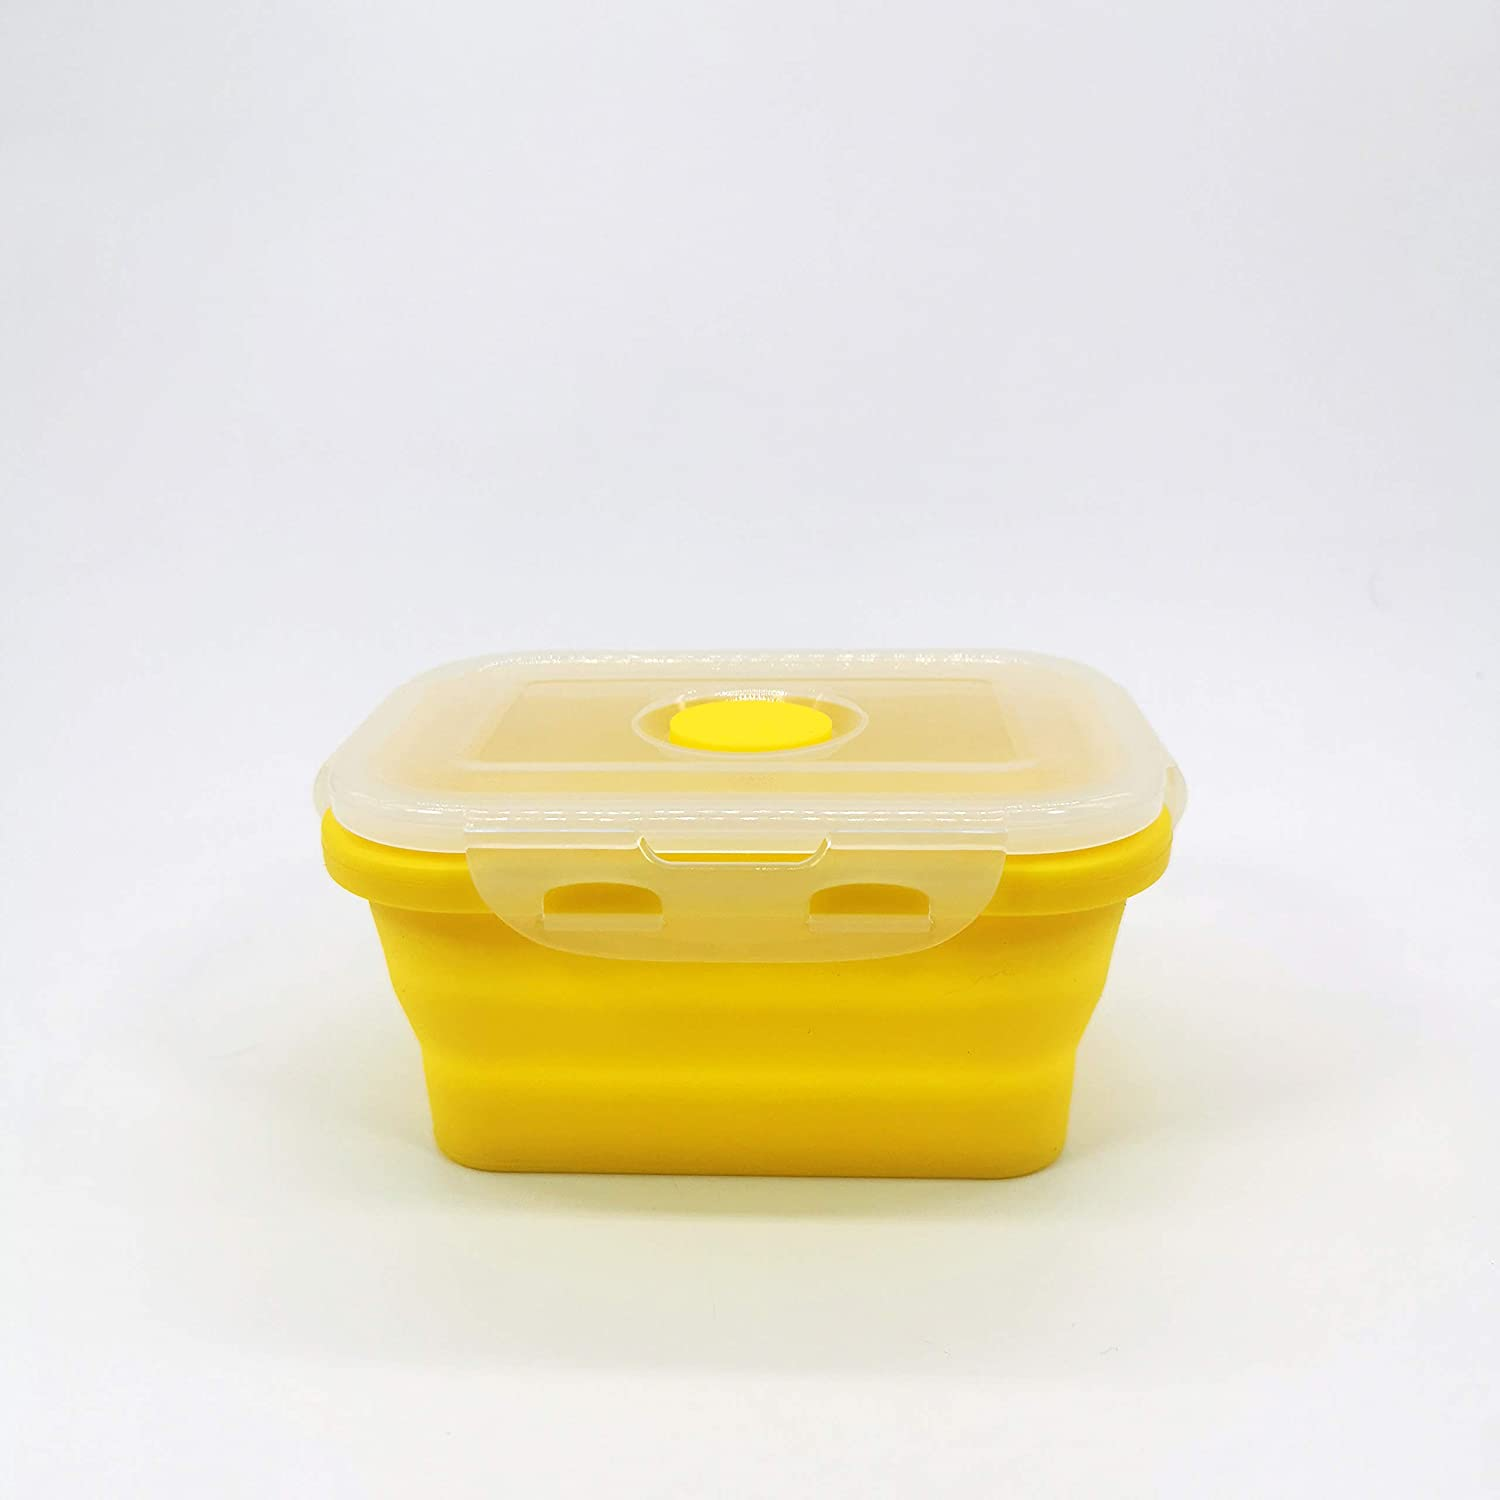 JADEWELL Collapsible Food Storage Container Camper Accessories Rectangle Shaped Silicone Bowl with Matt Finish Lid Multicolor 350ML